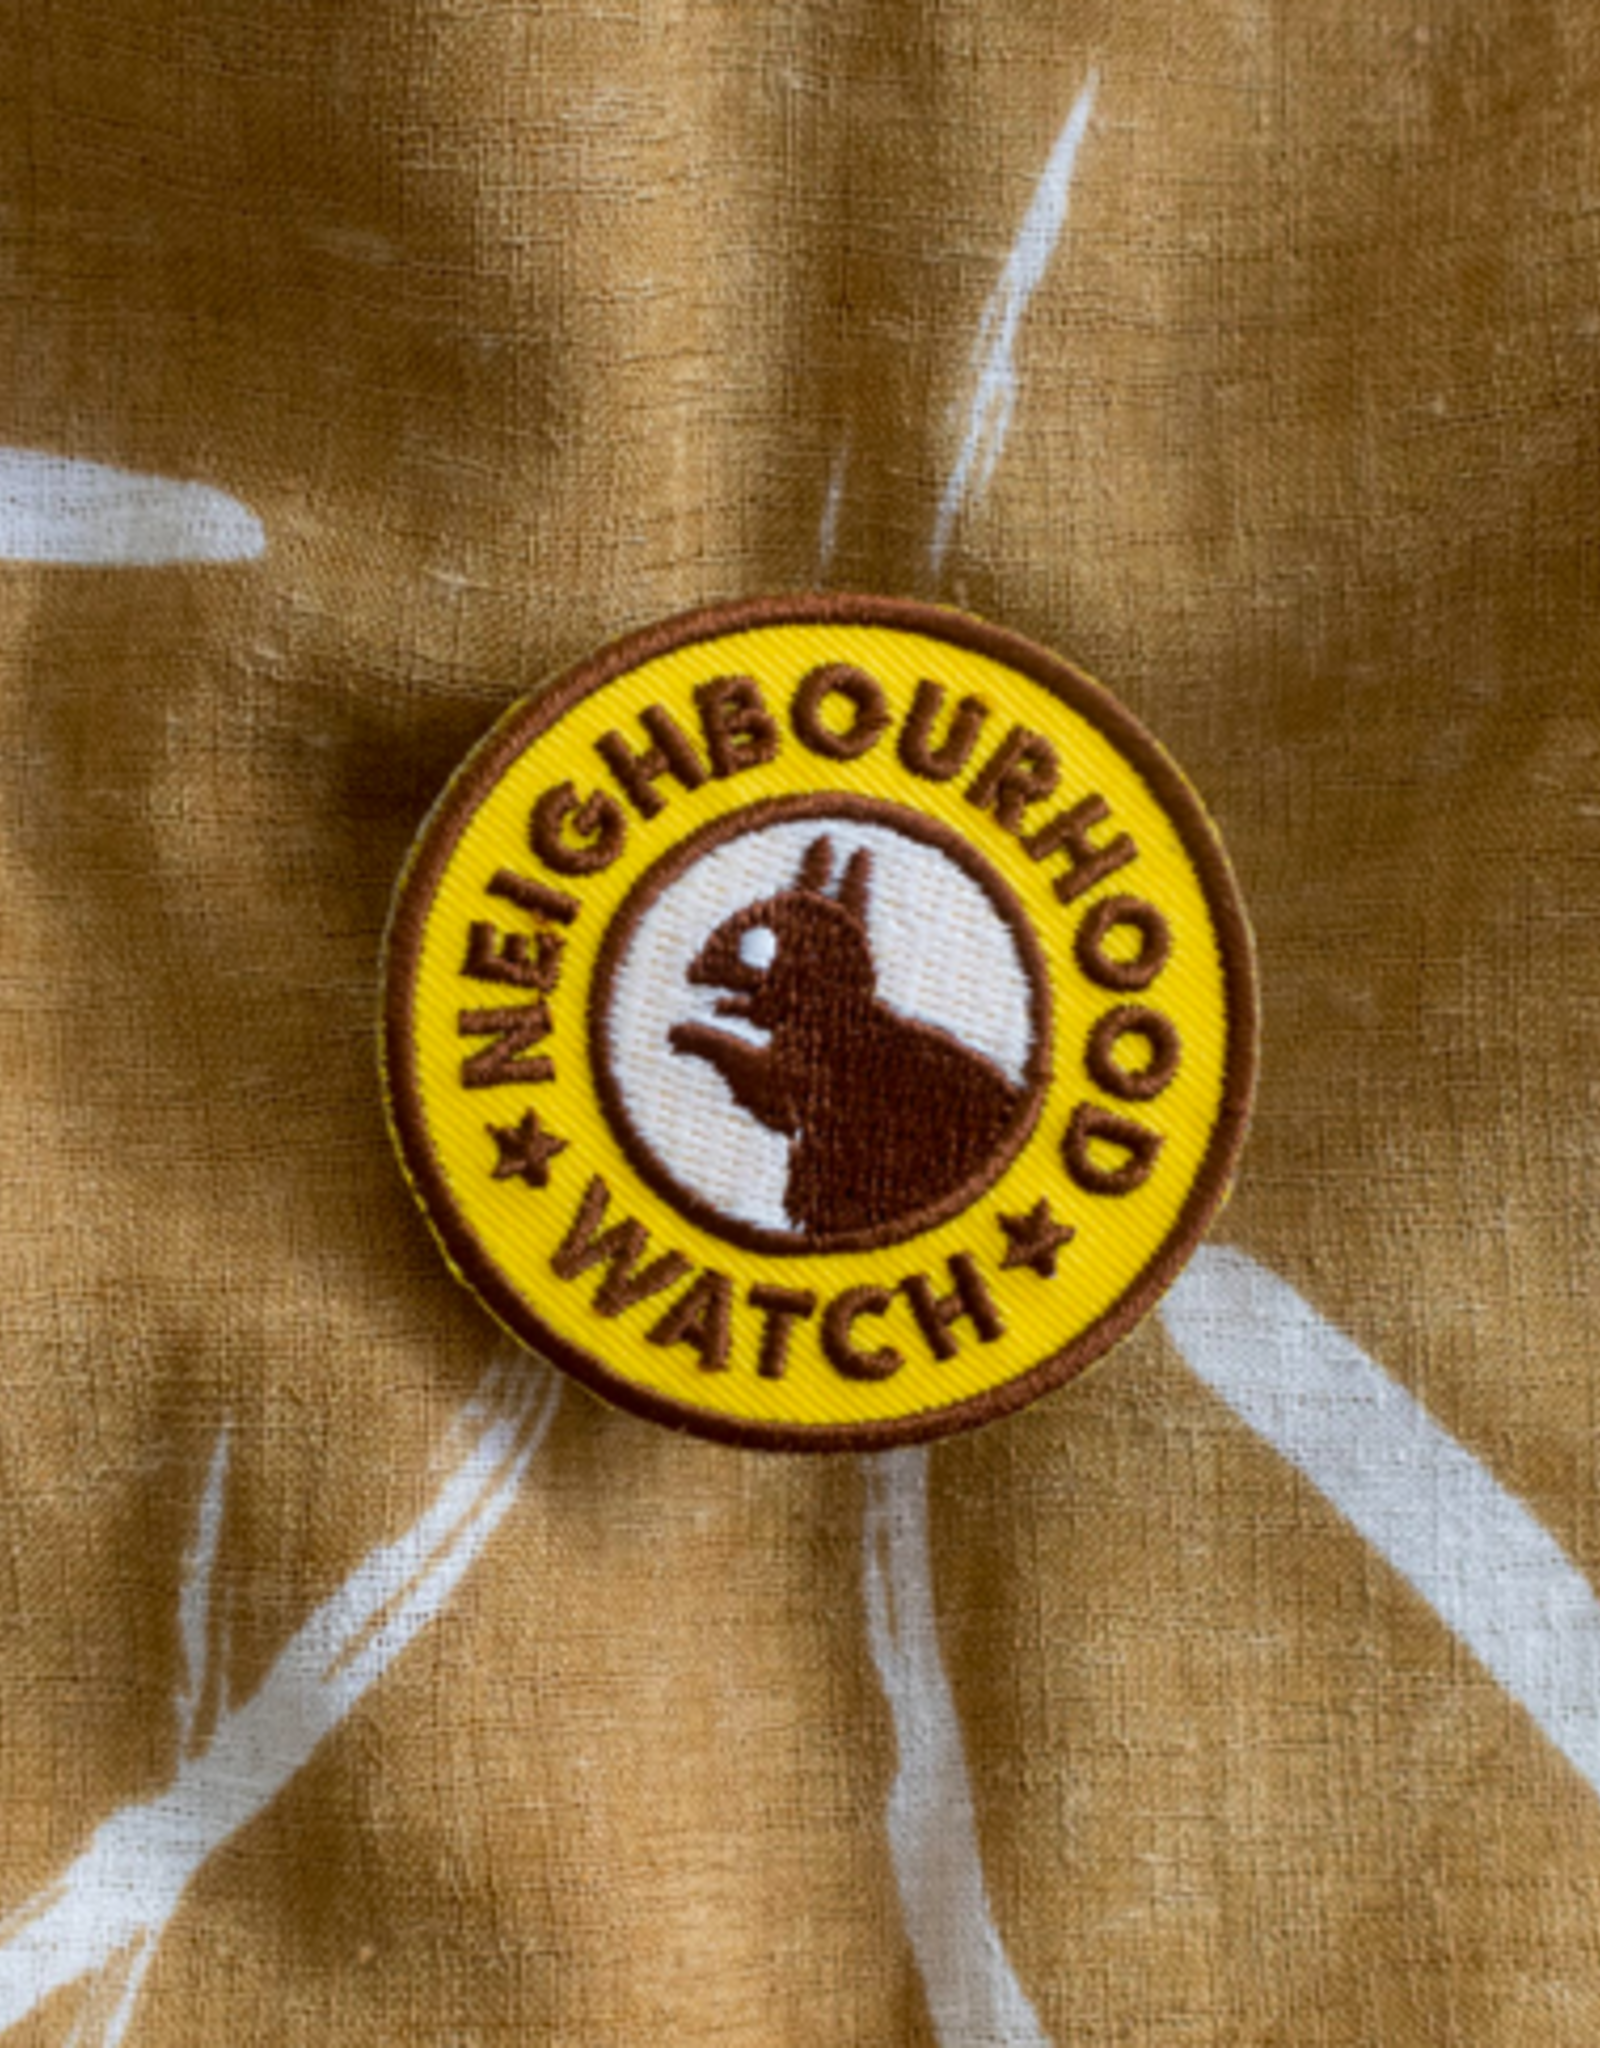 Scout's Honour Scout's Honour| Neighborhood Watch Patch